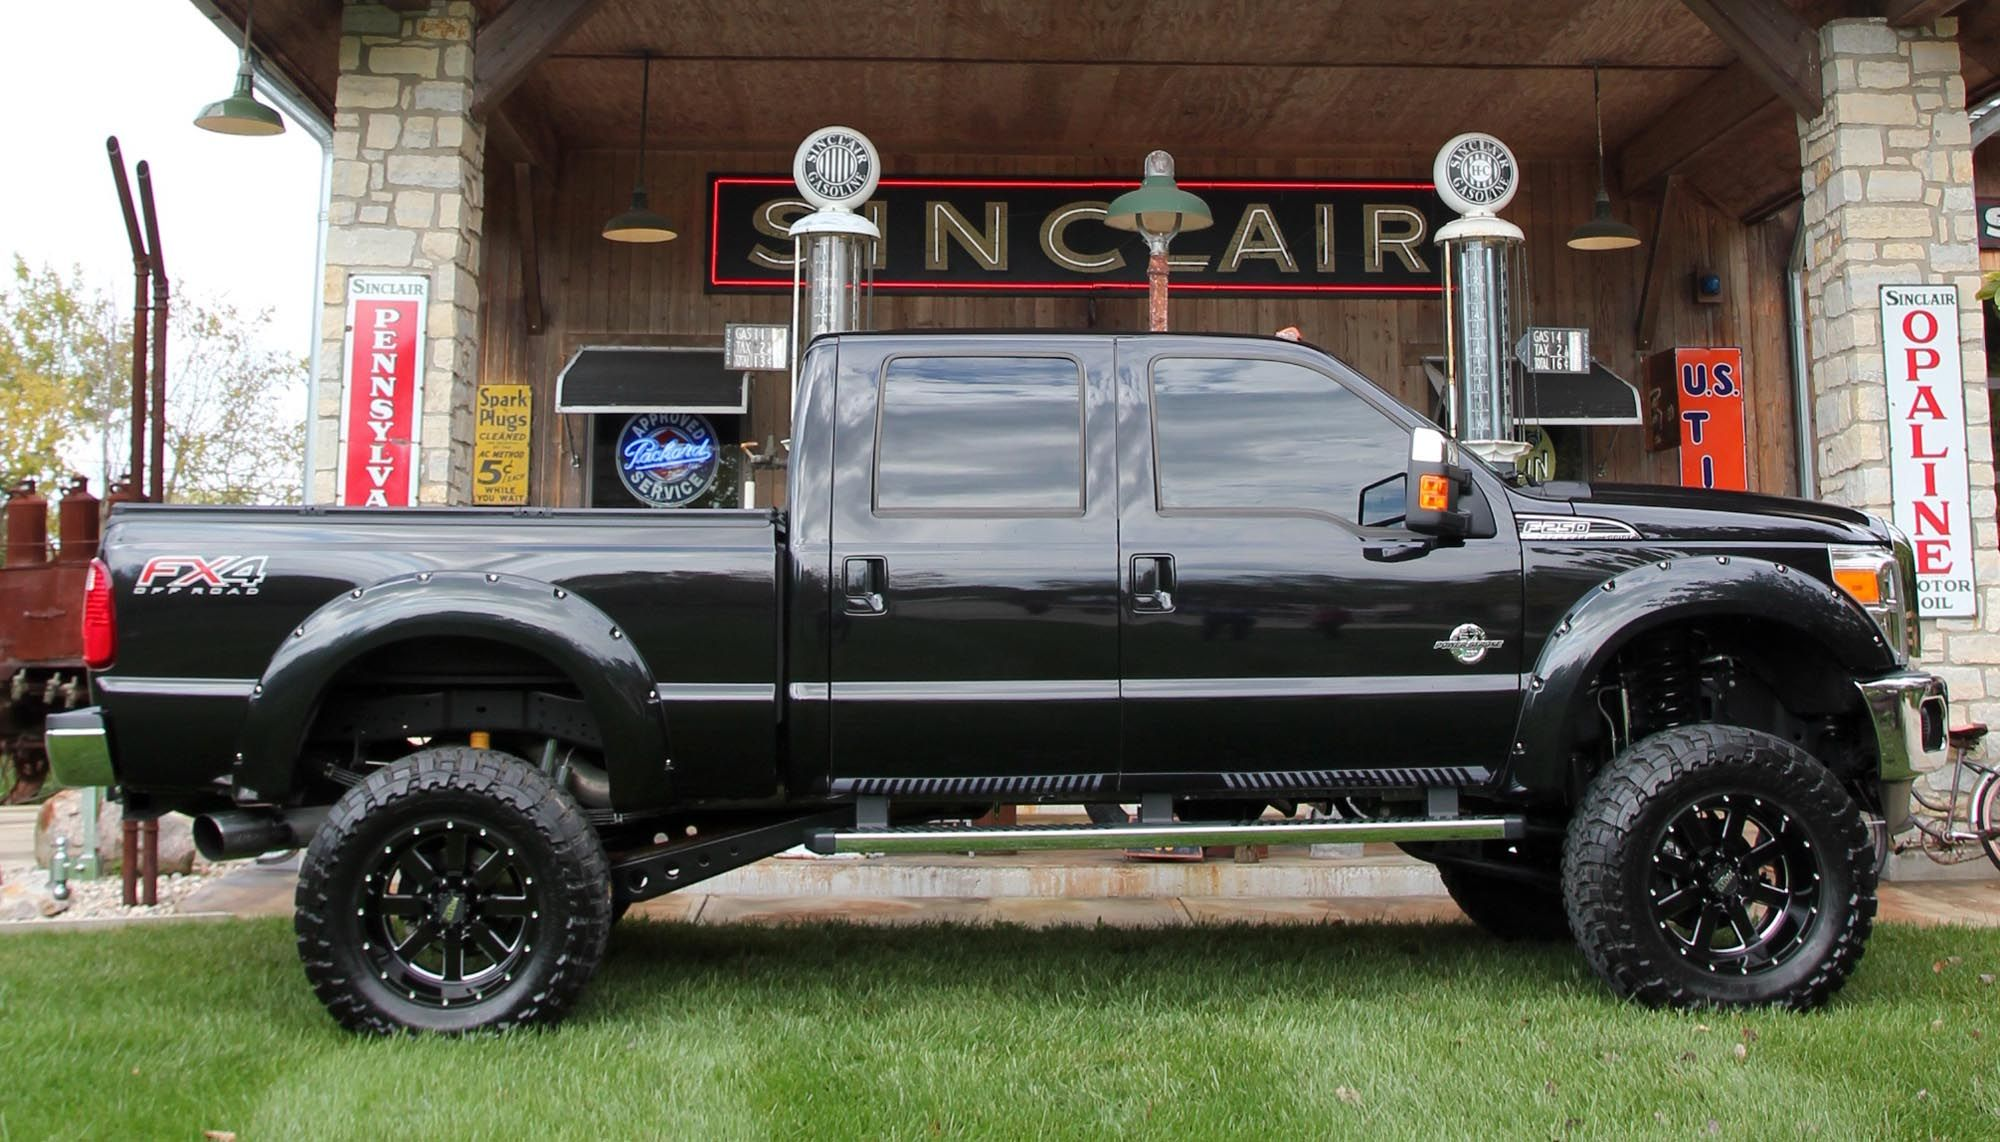 Ford F250 Bengal Truck With Images Jacked Up Trucks Trucks